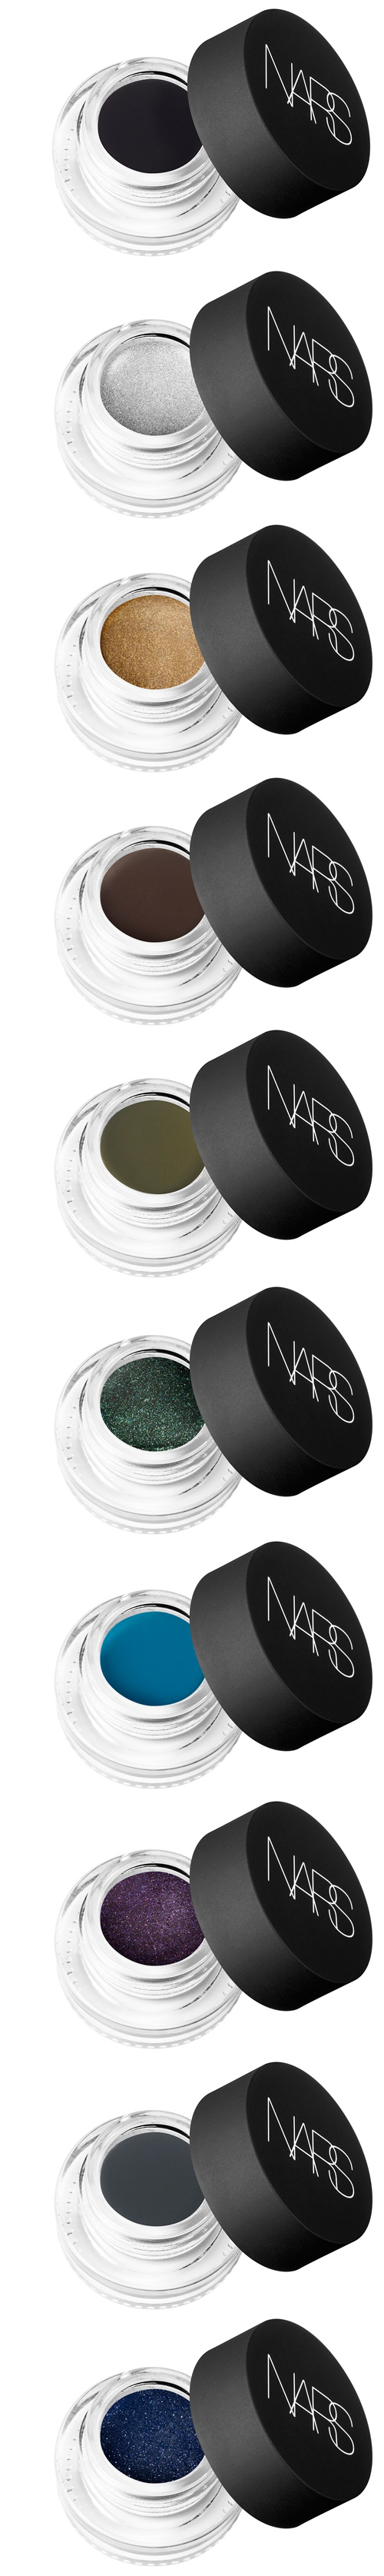 NARS-Fall-2013-Eye-Paint-Collection-3